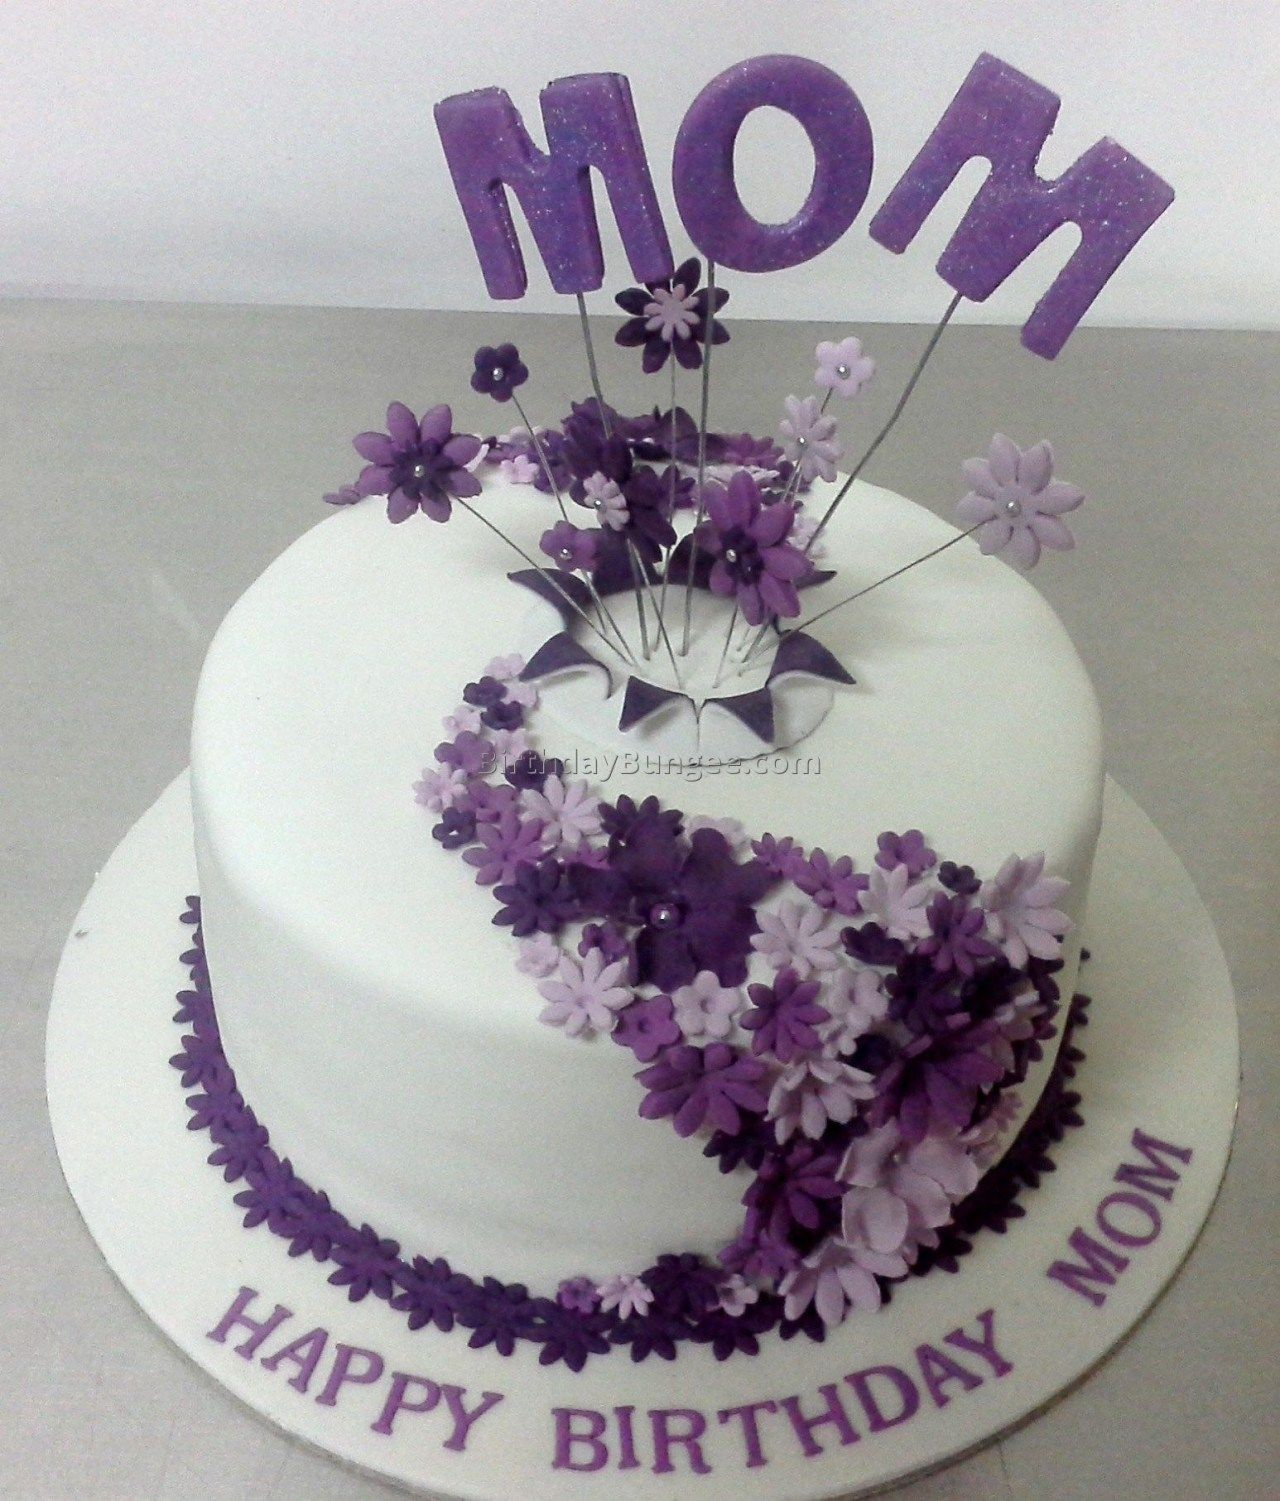 Superb Mom Birthday Cakes Motherdaughter Birthday Cake Cute Ideas Debs My Funny Birthday Cards Online Alyptdamsfinfo